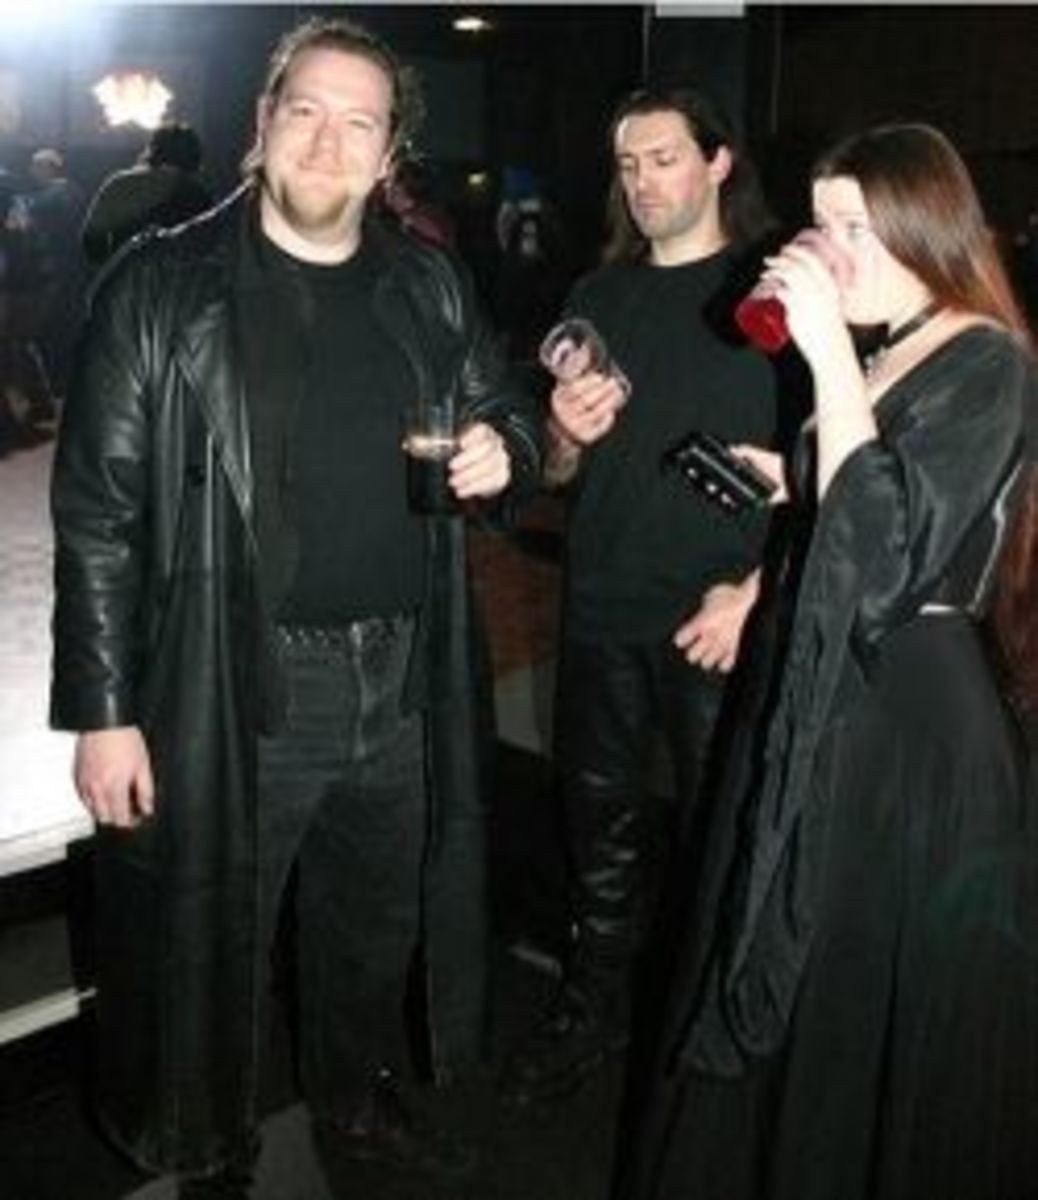 Stereotypical goths?